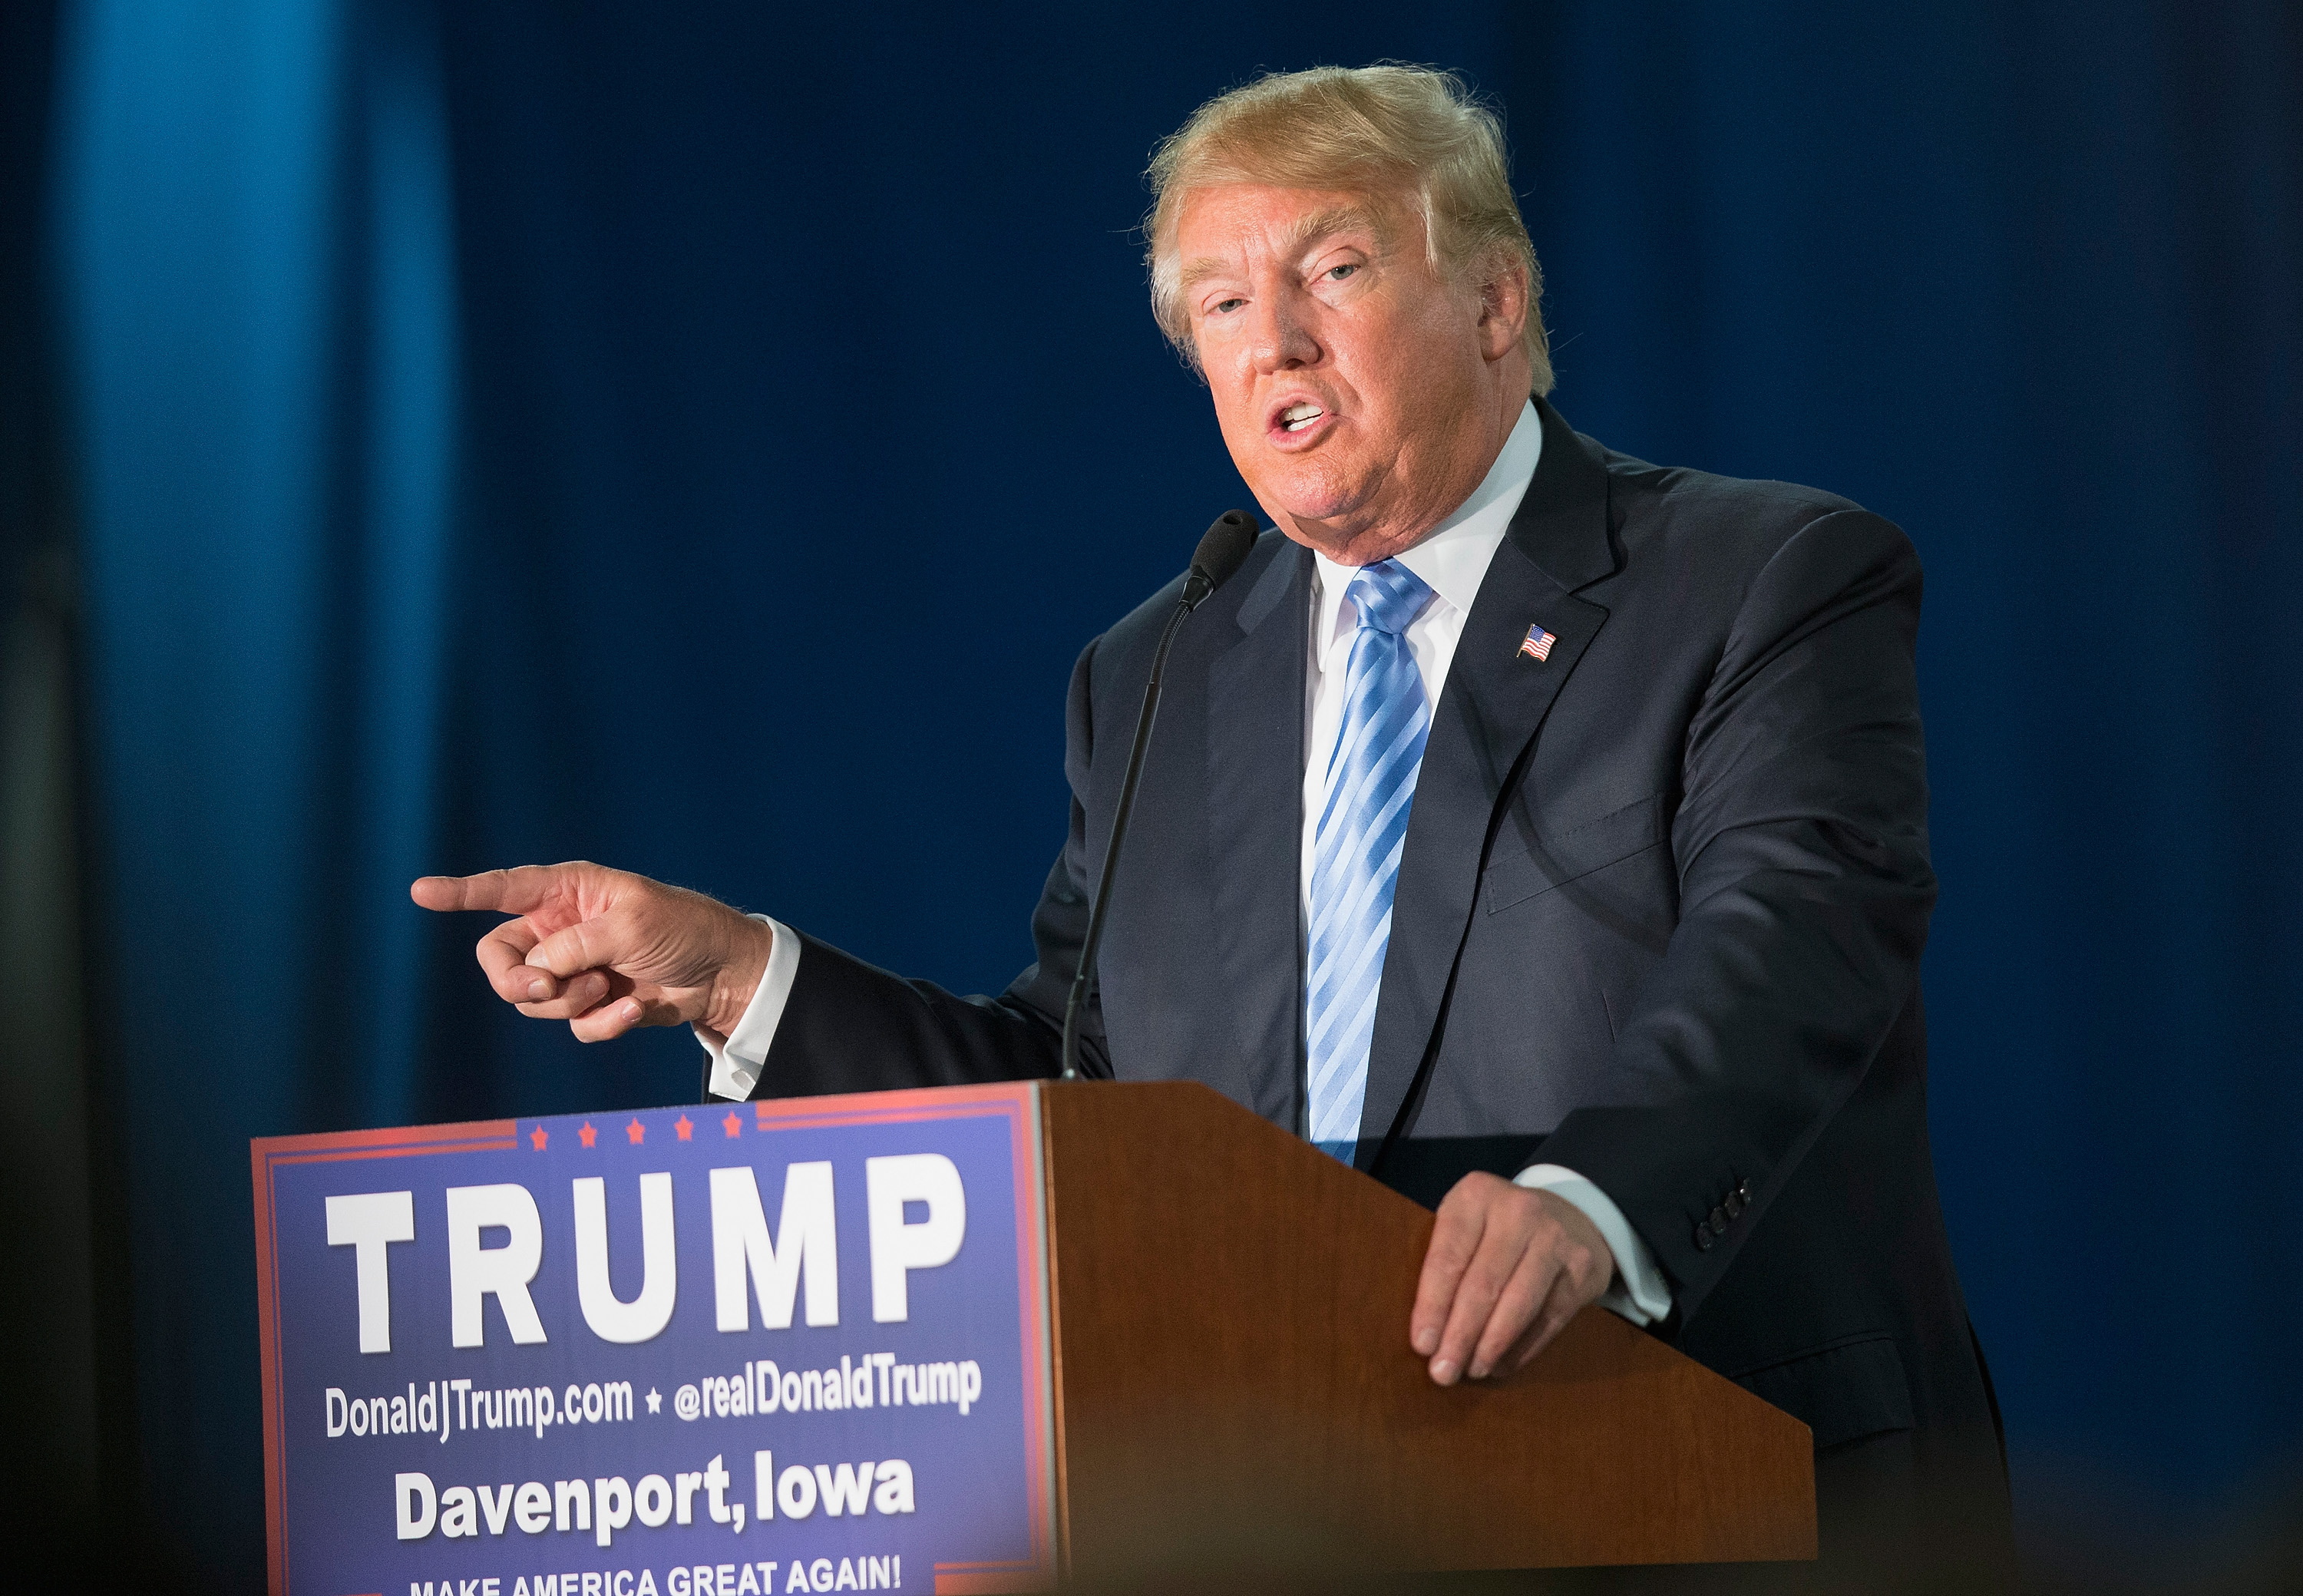 Republican presidential candidate Donald Trump speaks to guests gathered for a campaign event at Mississippi Valley Fairgrounds on December 5, 2015 in Davenport, Iowa.